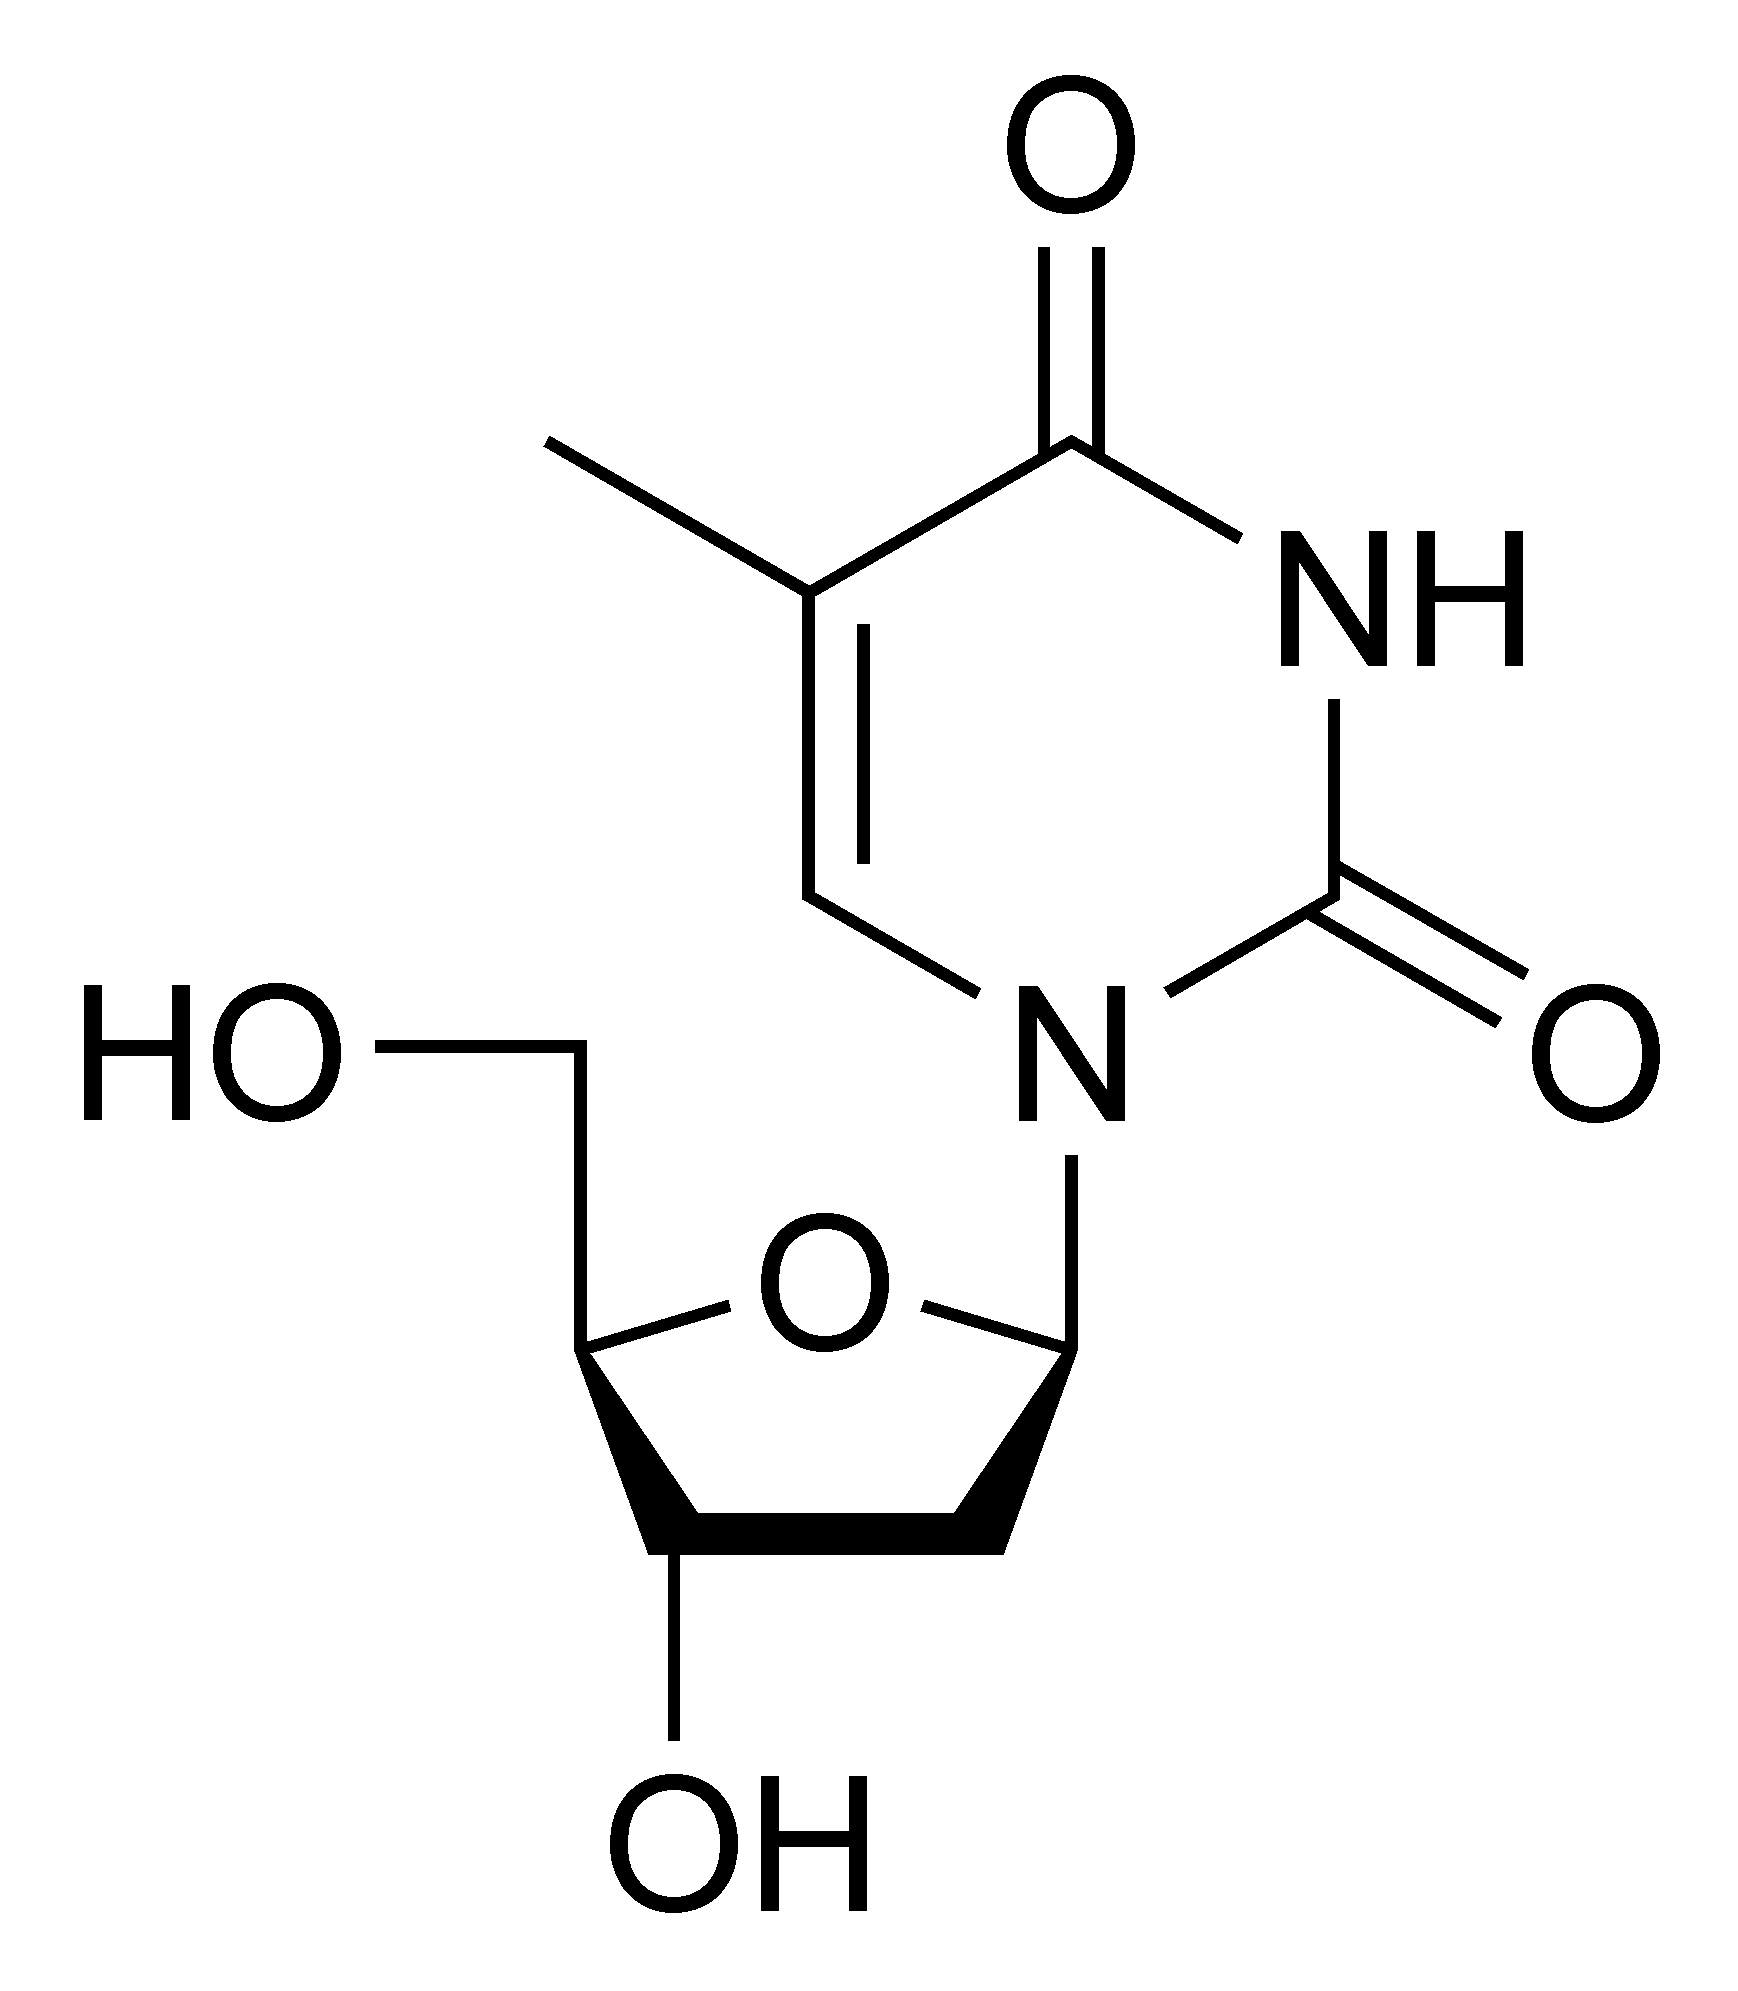 Chemical structure of thymidine